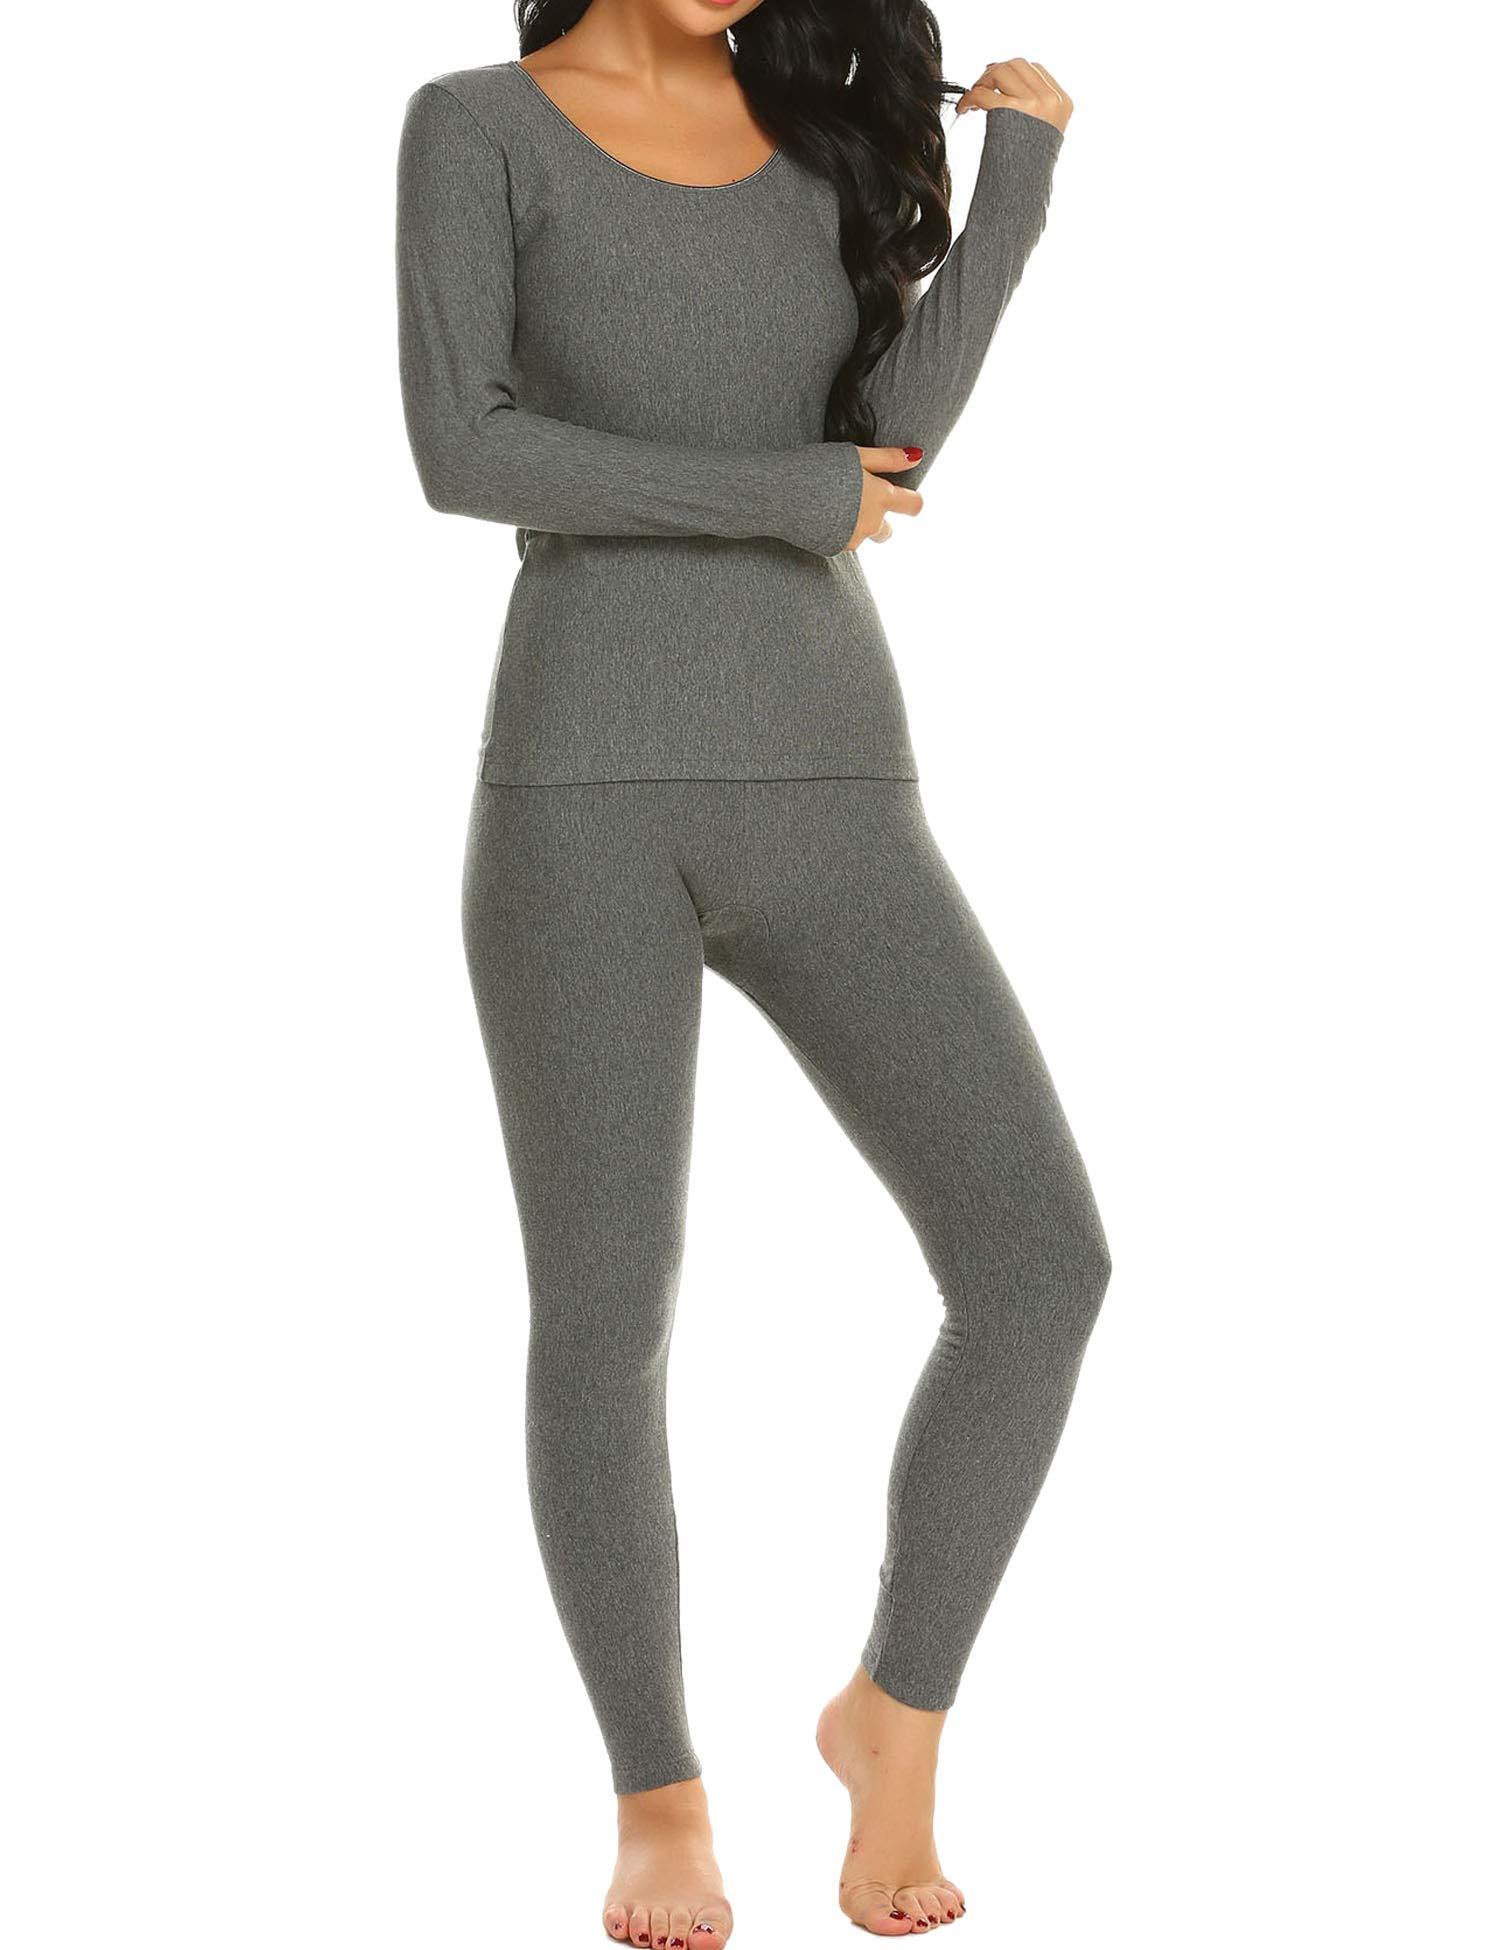 Ekouaer Long Thermal Underwear Fleece Lined Winter Base Layering Set for Women,Fleece-dark Gray,Large by Ekouaer